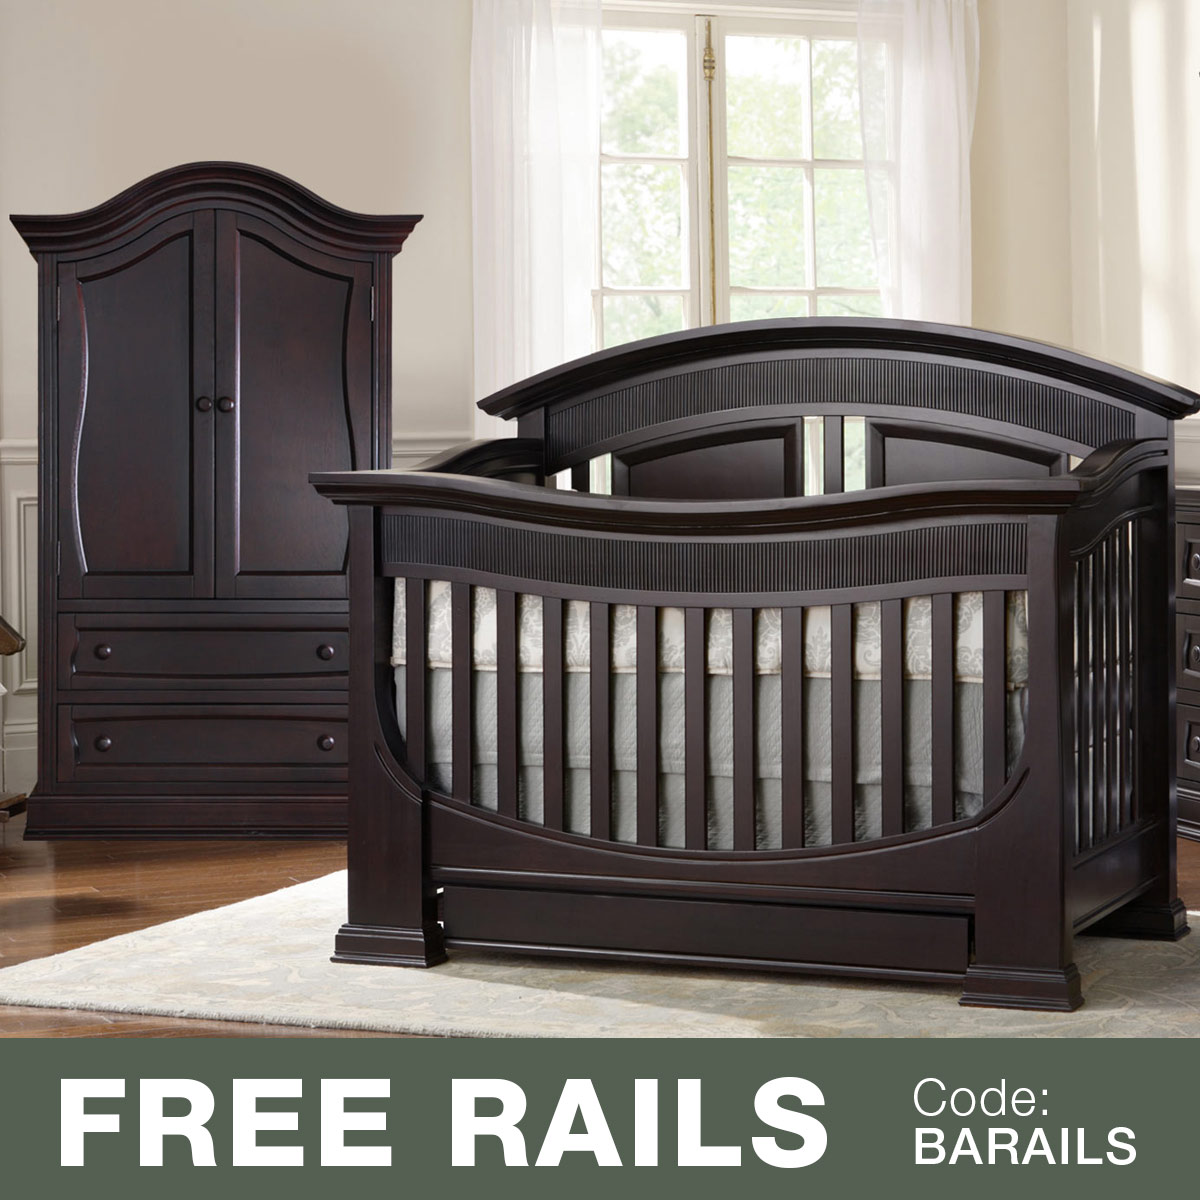 Baby Appleseed Chelmsford 2 Piece Nursery Set   Convertible Crib And Armoire  In Espresso FREE SHIPPING